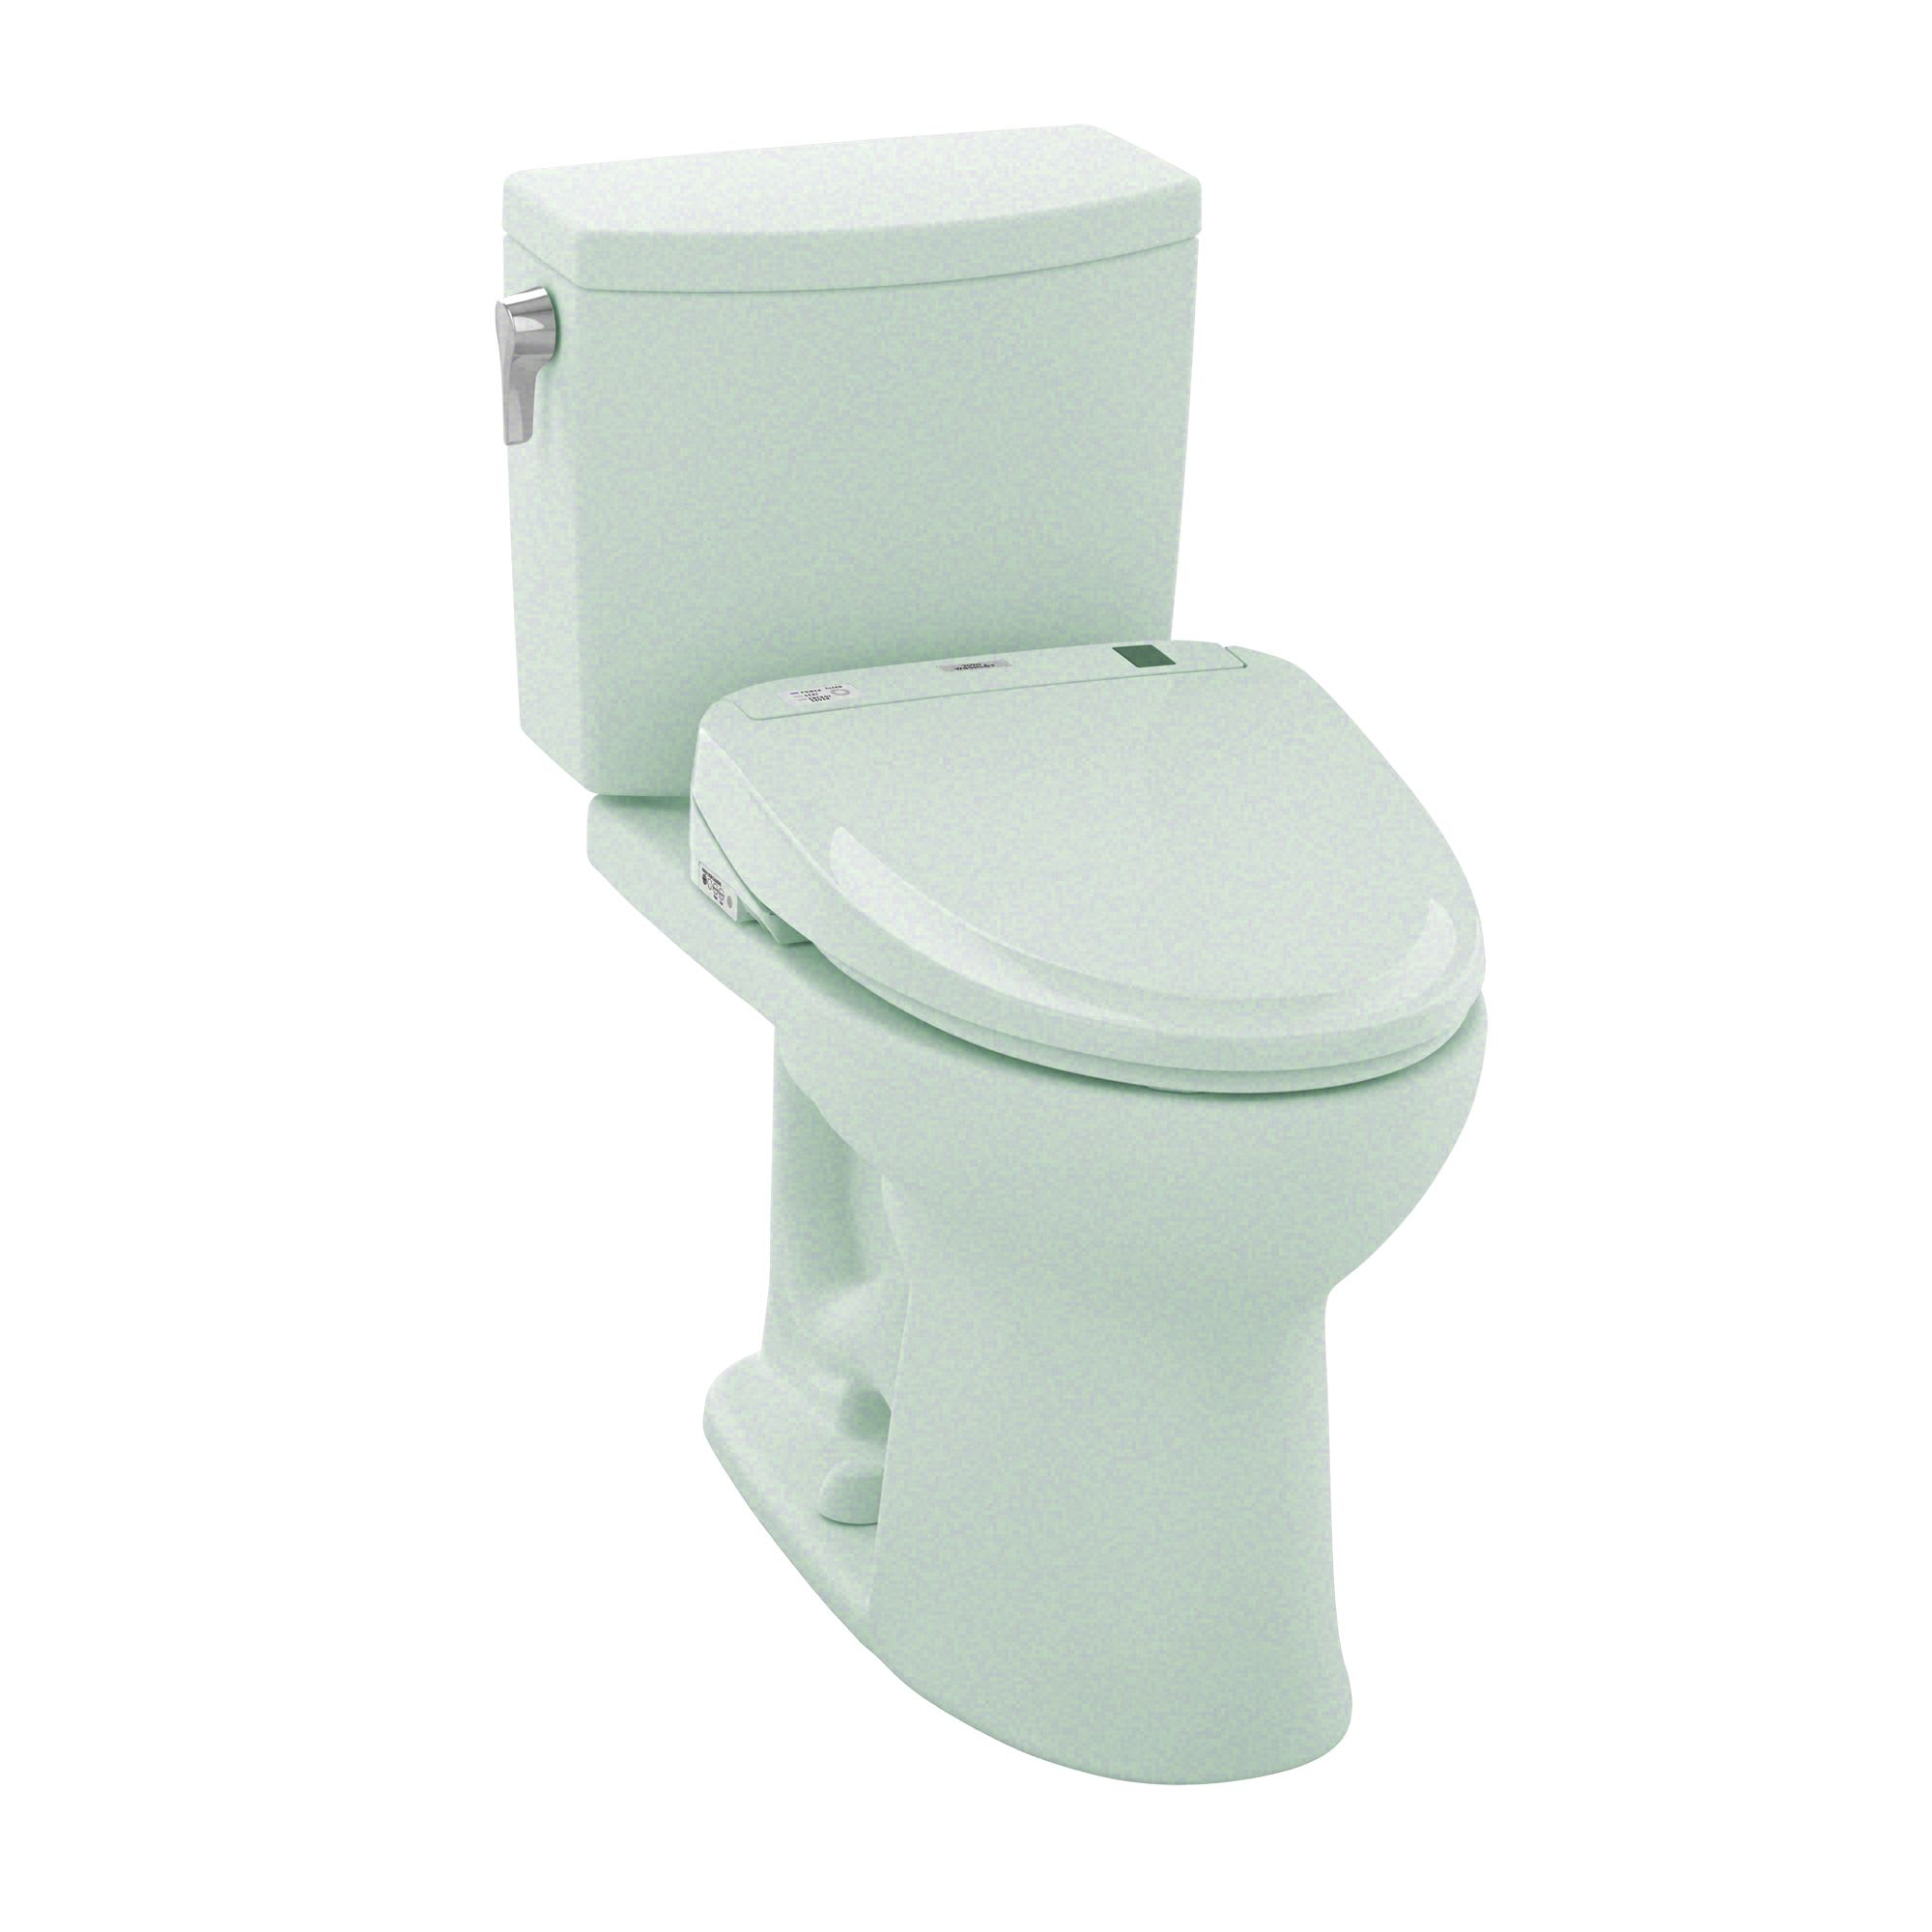 Toto Elongated Toilet Seat.Toto Mw454584cufg